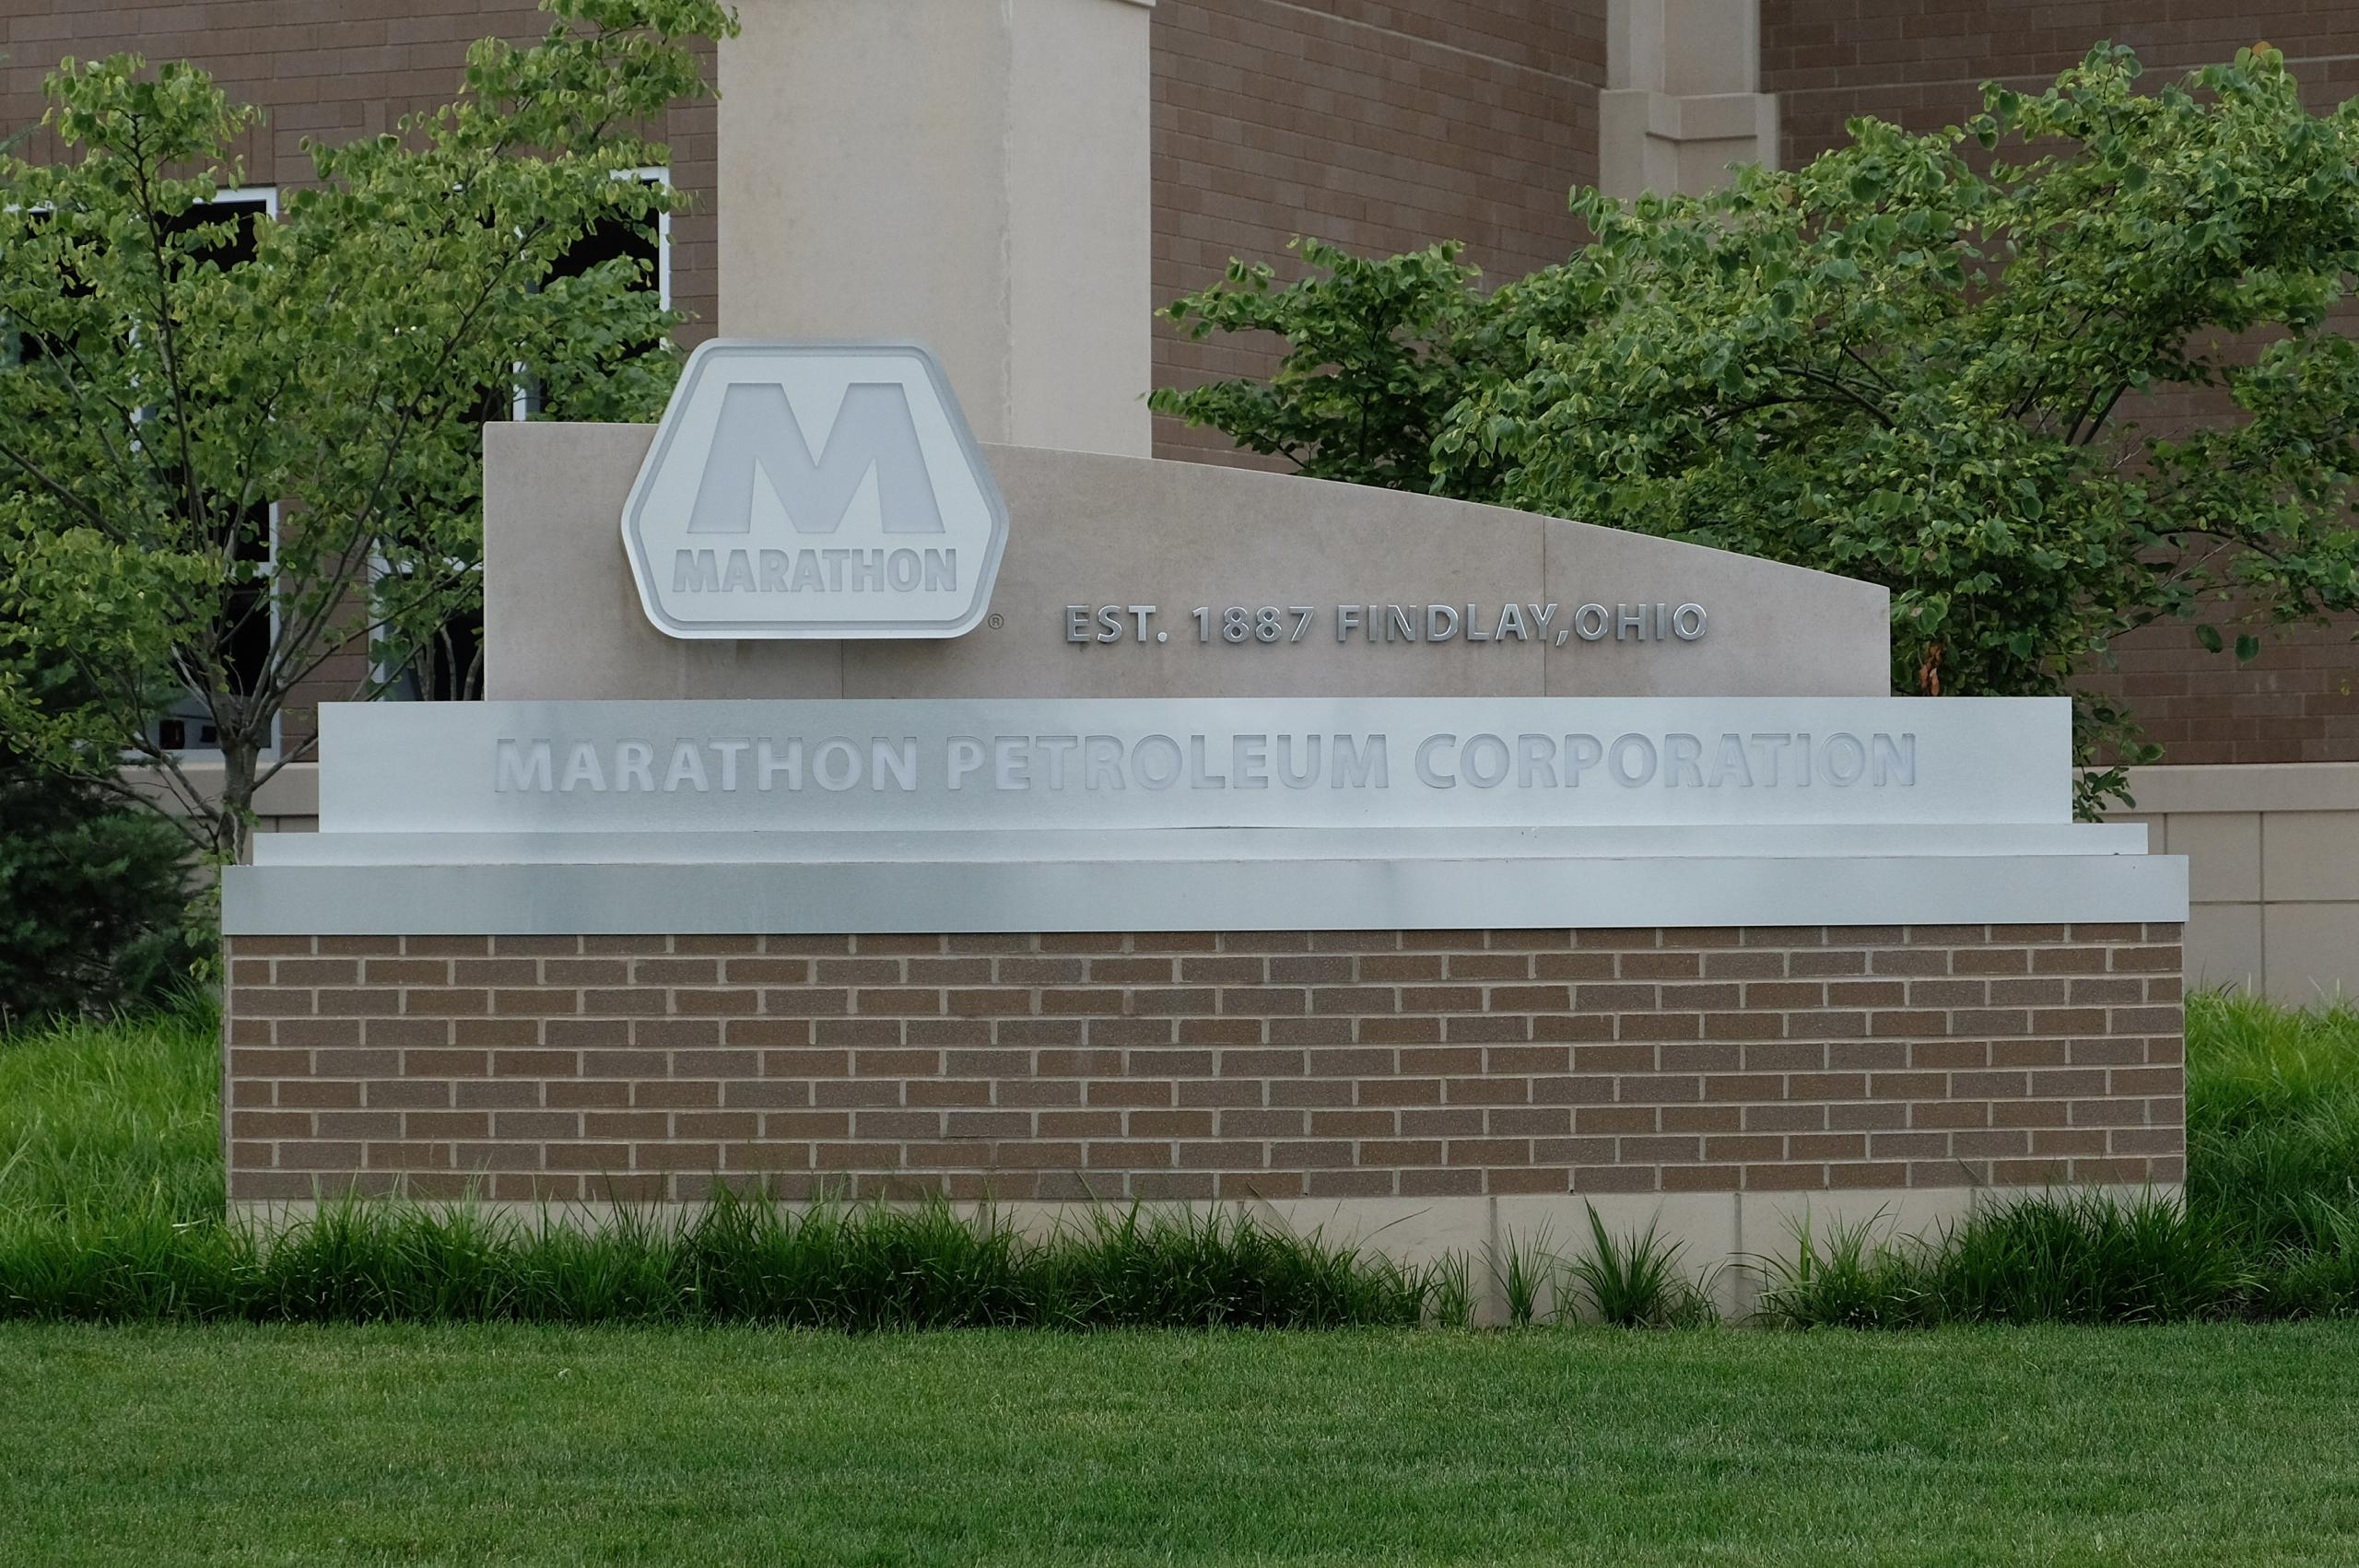 Marathon Petroleum's corporate headquarters in Findlay, Ohio.